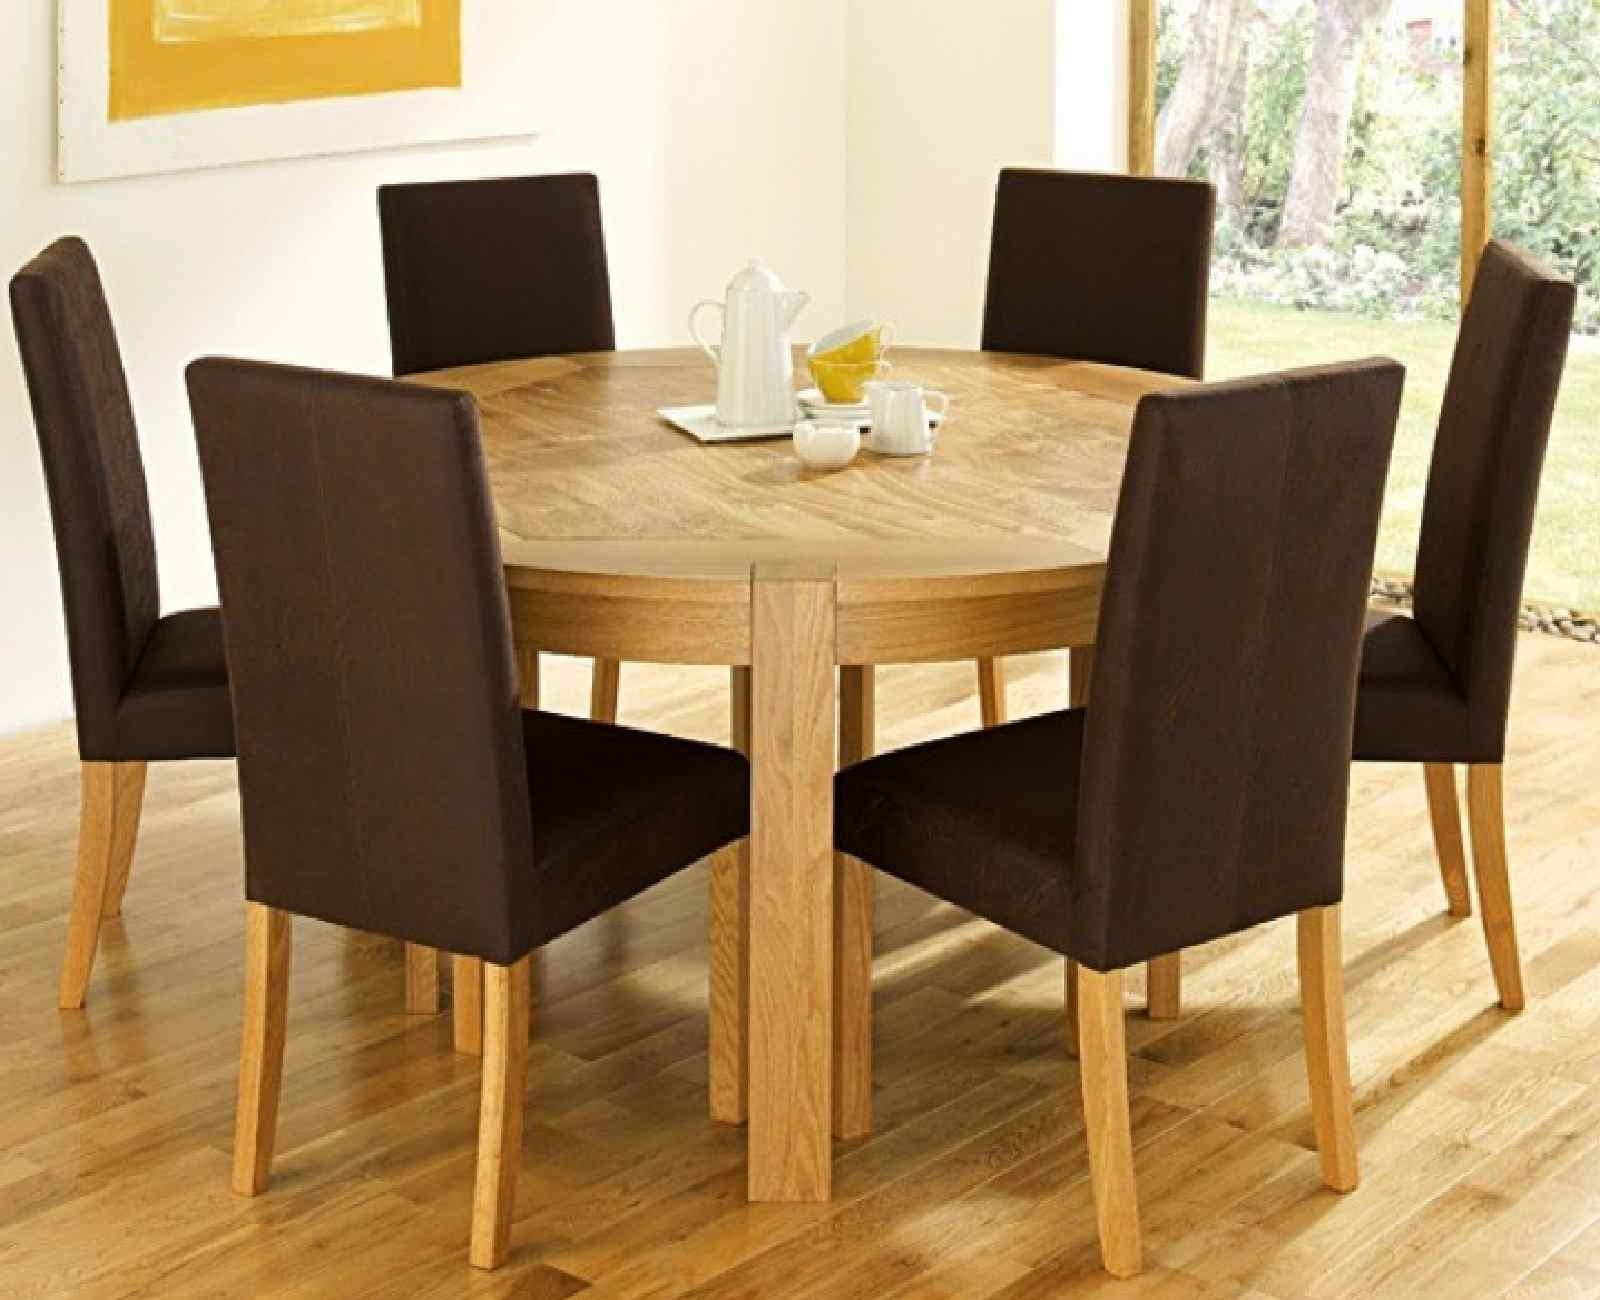 Newest Round Dining Table Set For 6 – Castrophotos Pertaining To Parquet 6 Piece Dining Sets (View 11 of 25)